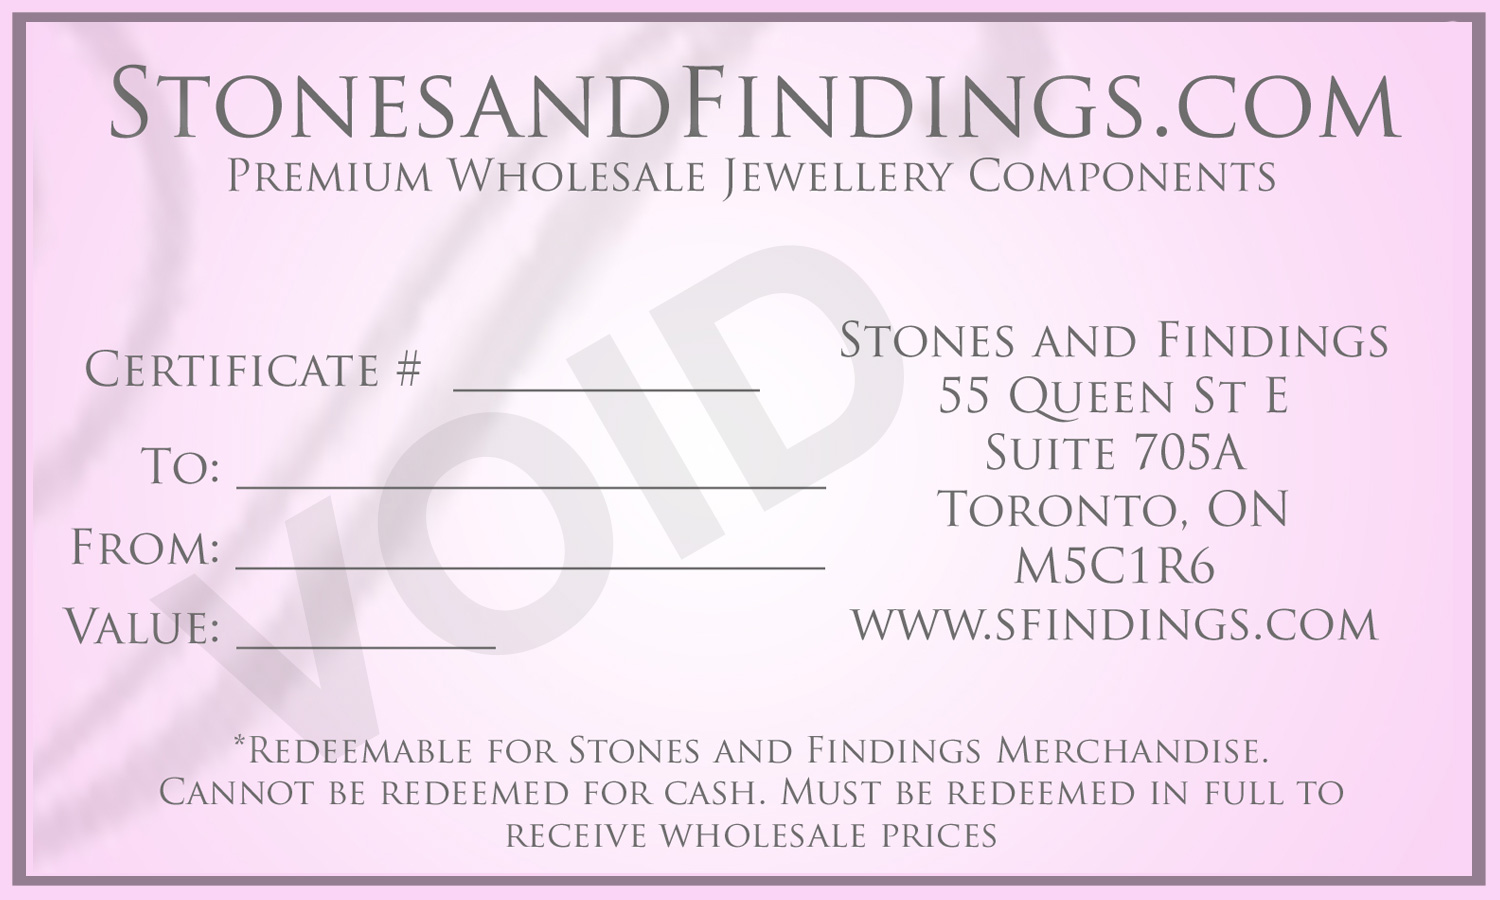 Stones & Findings Gift Certifcate